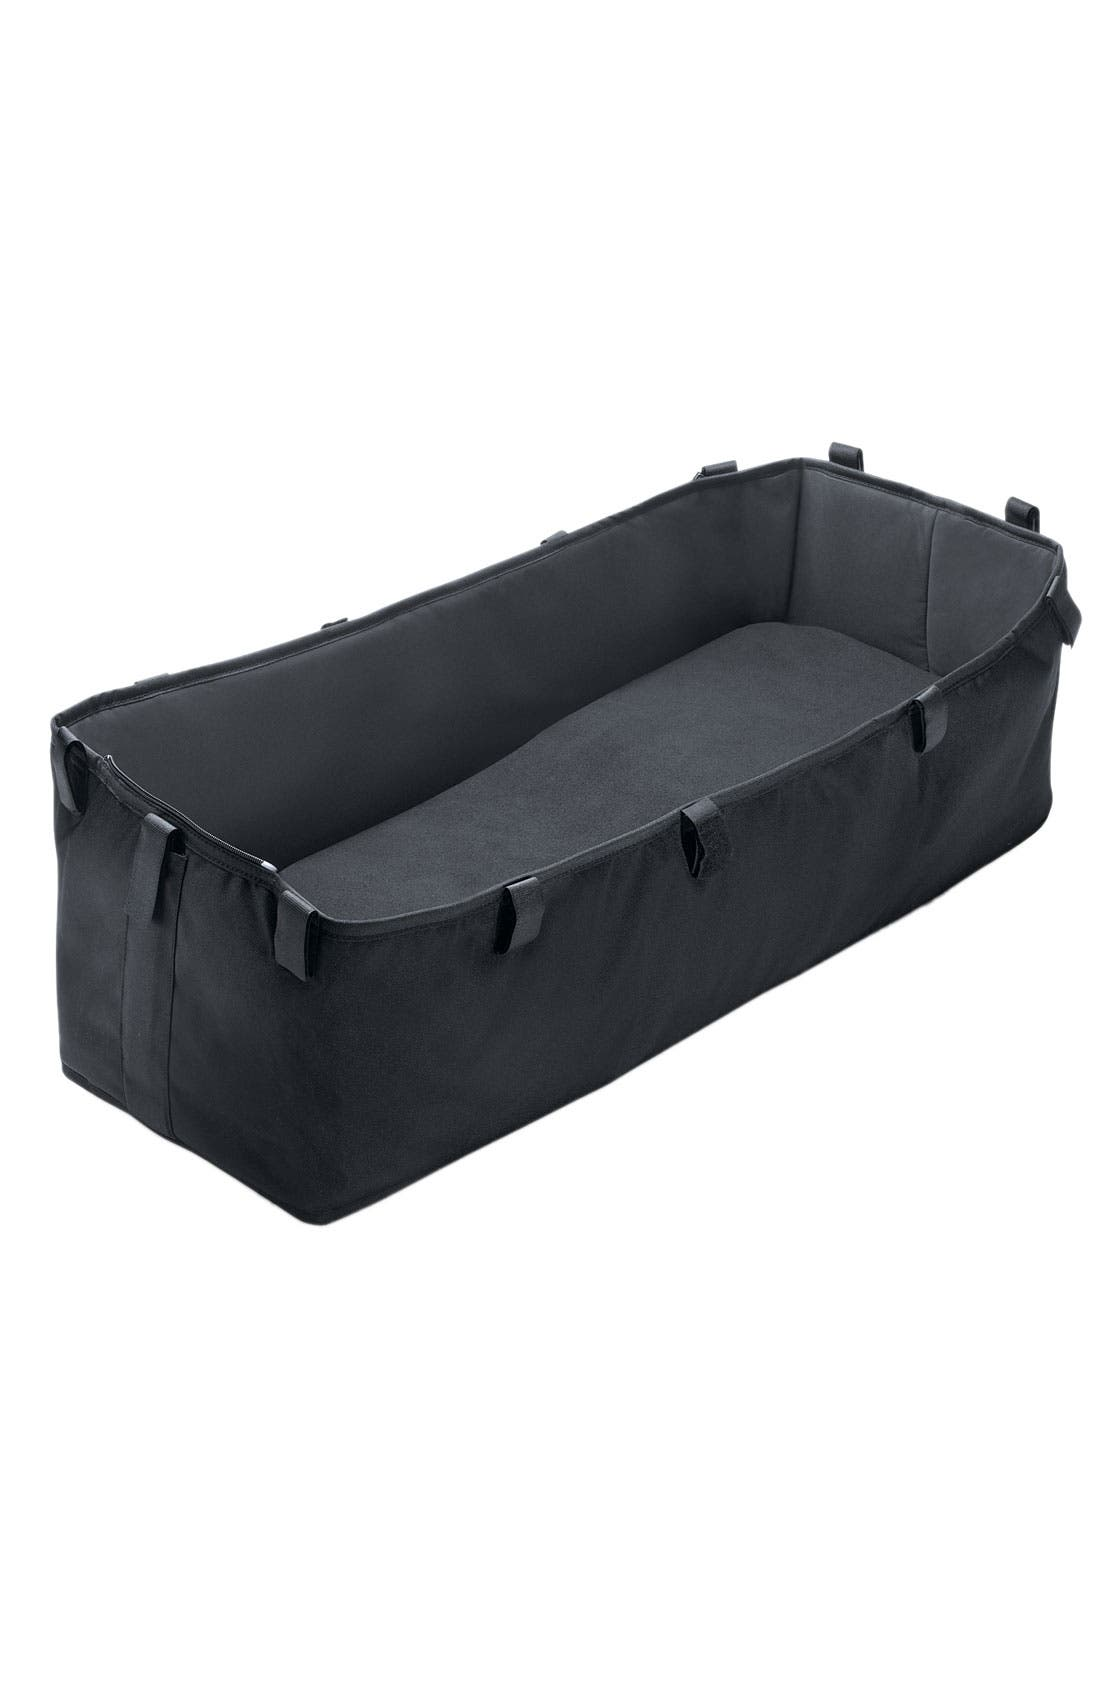 Alternate Image 1 Selected - Bugaboo 'Donkey' Bassinet Base Complete